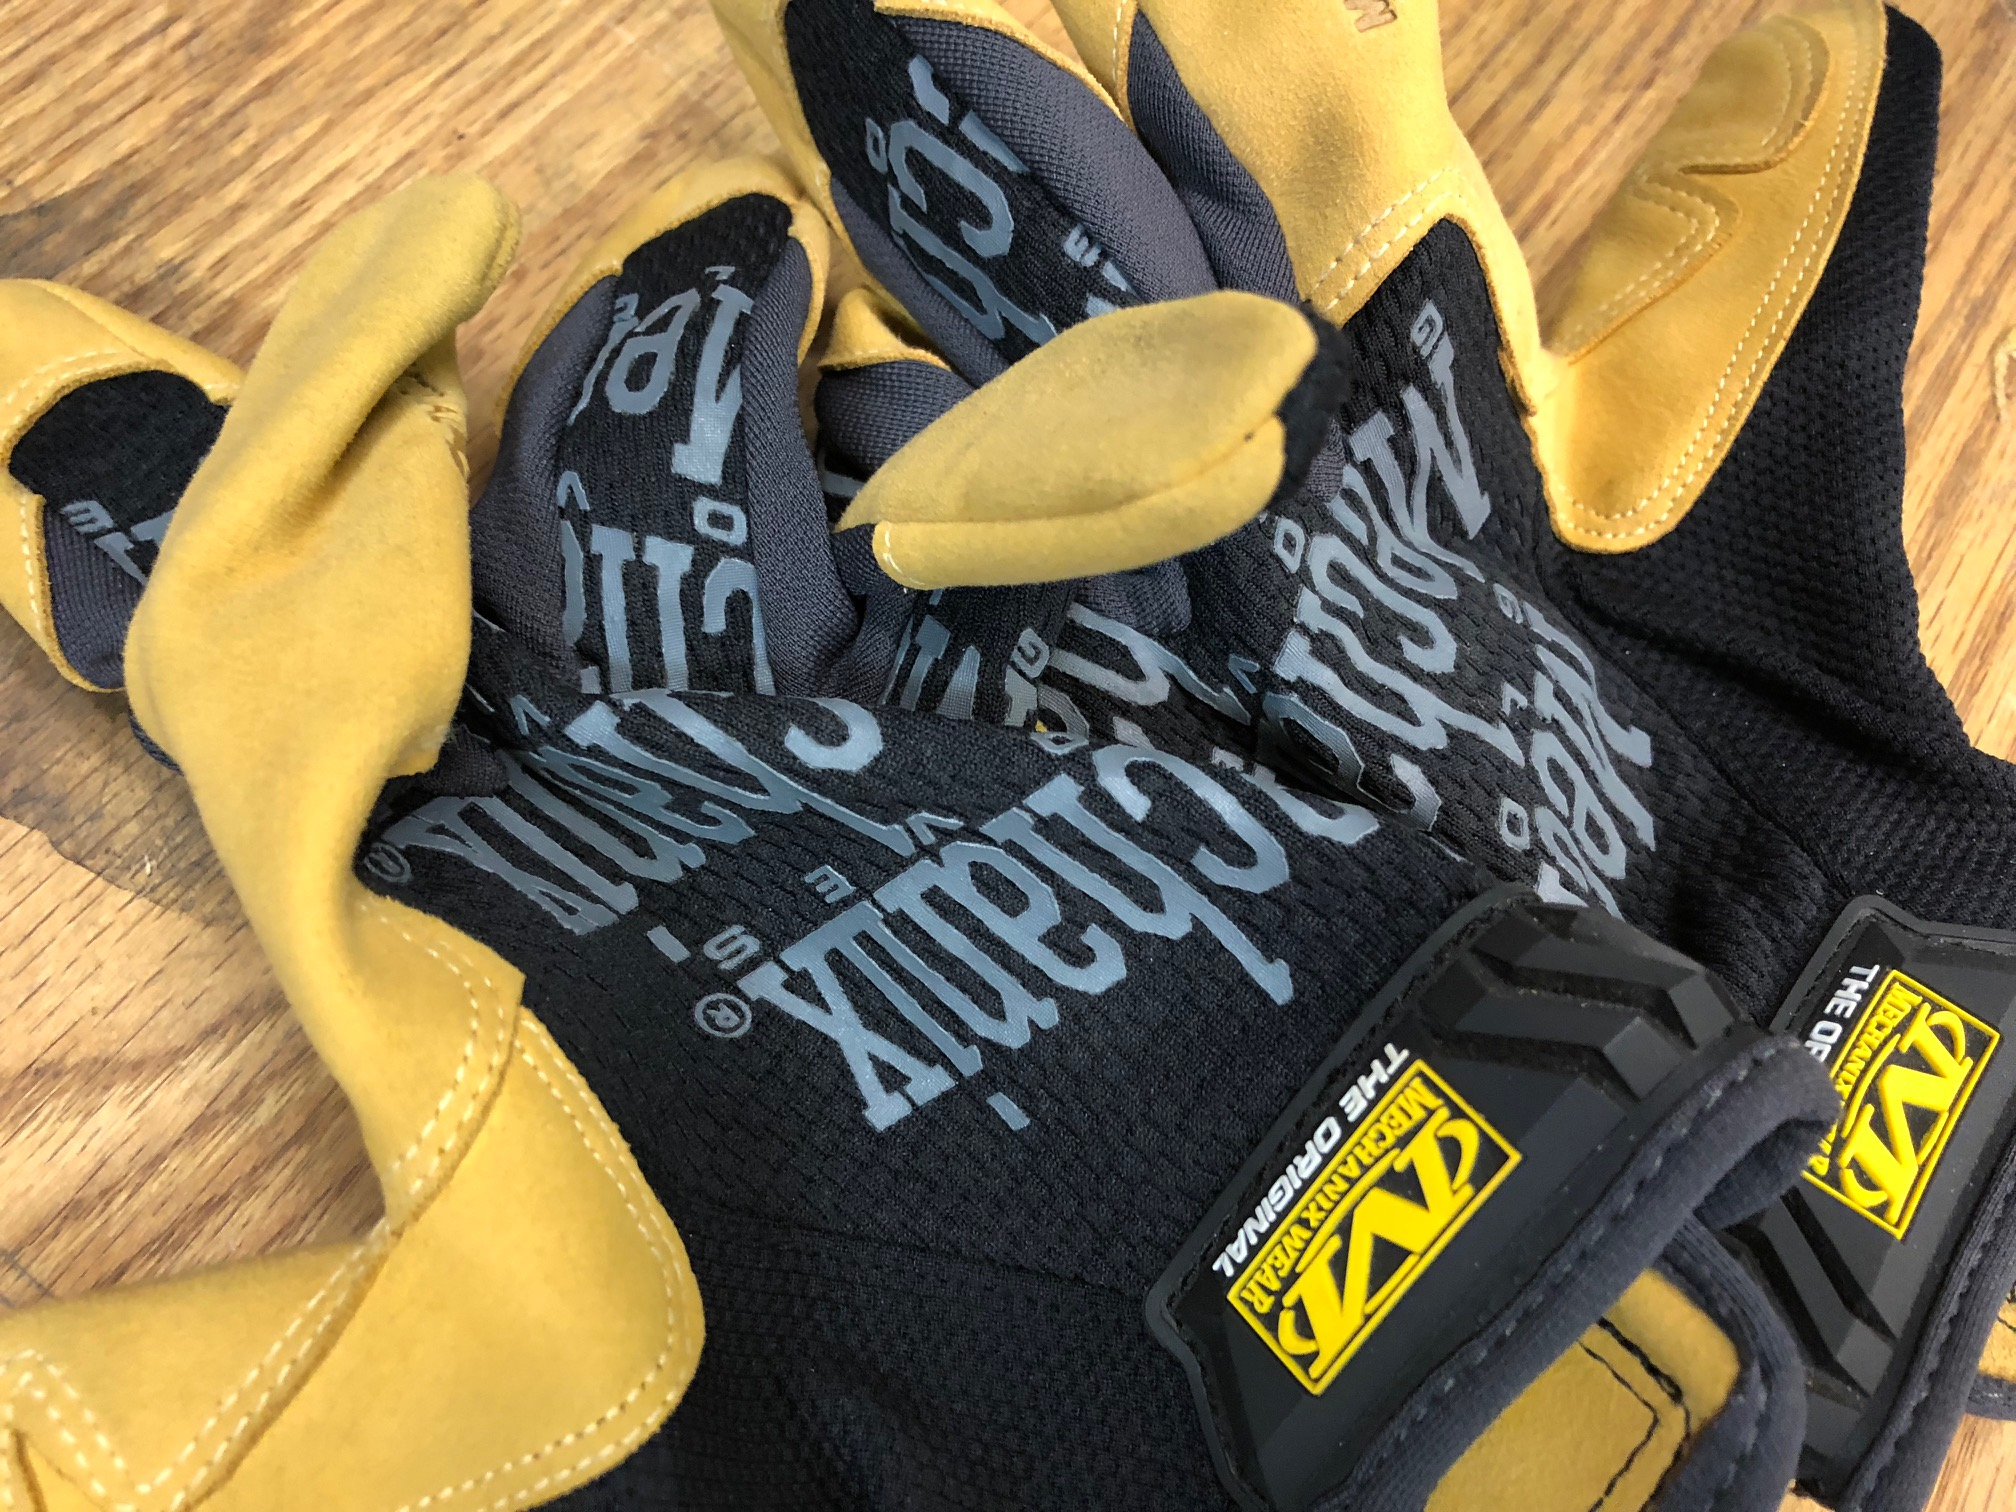 Mechanix (Gloves)